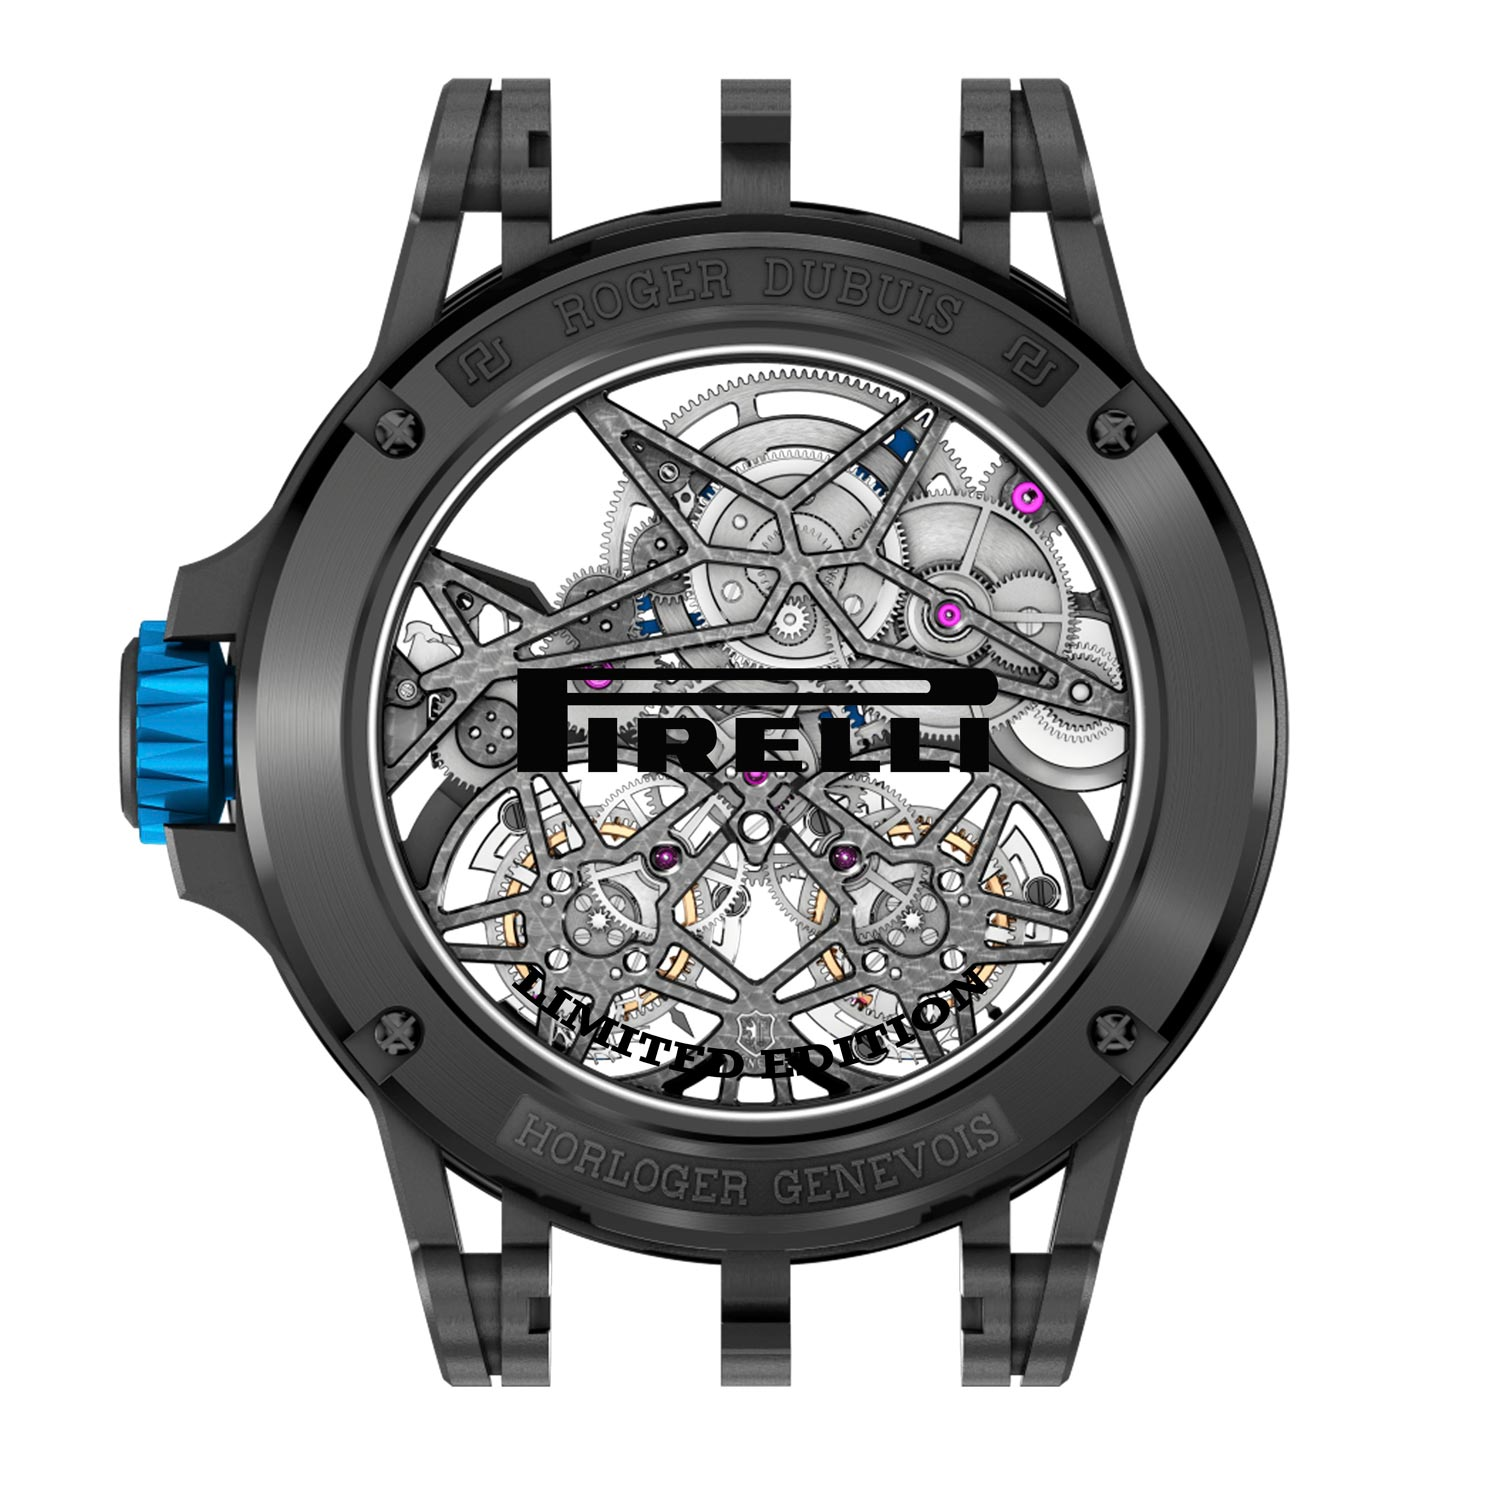 Roger Dubuis – An Unconventional Expression of Time 8